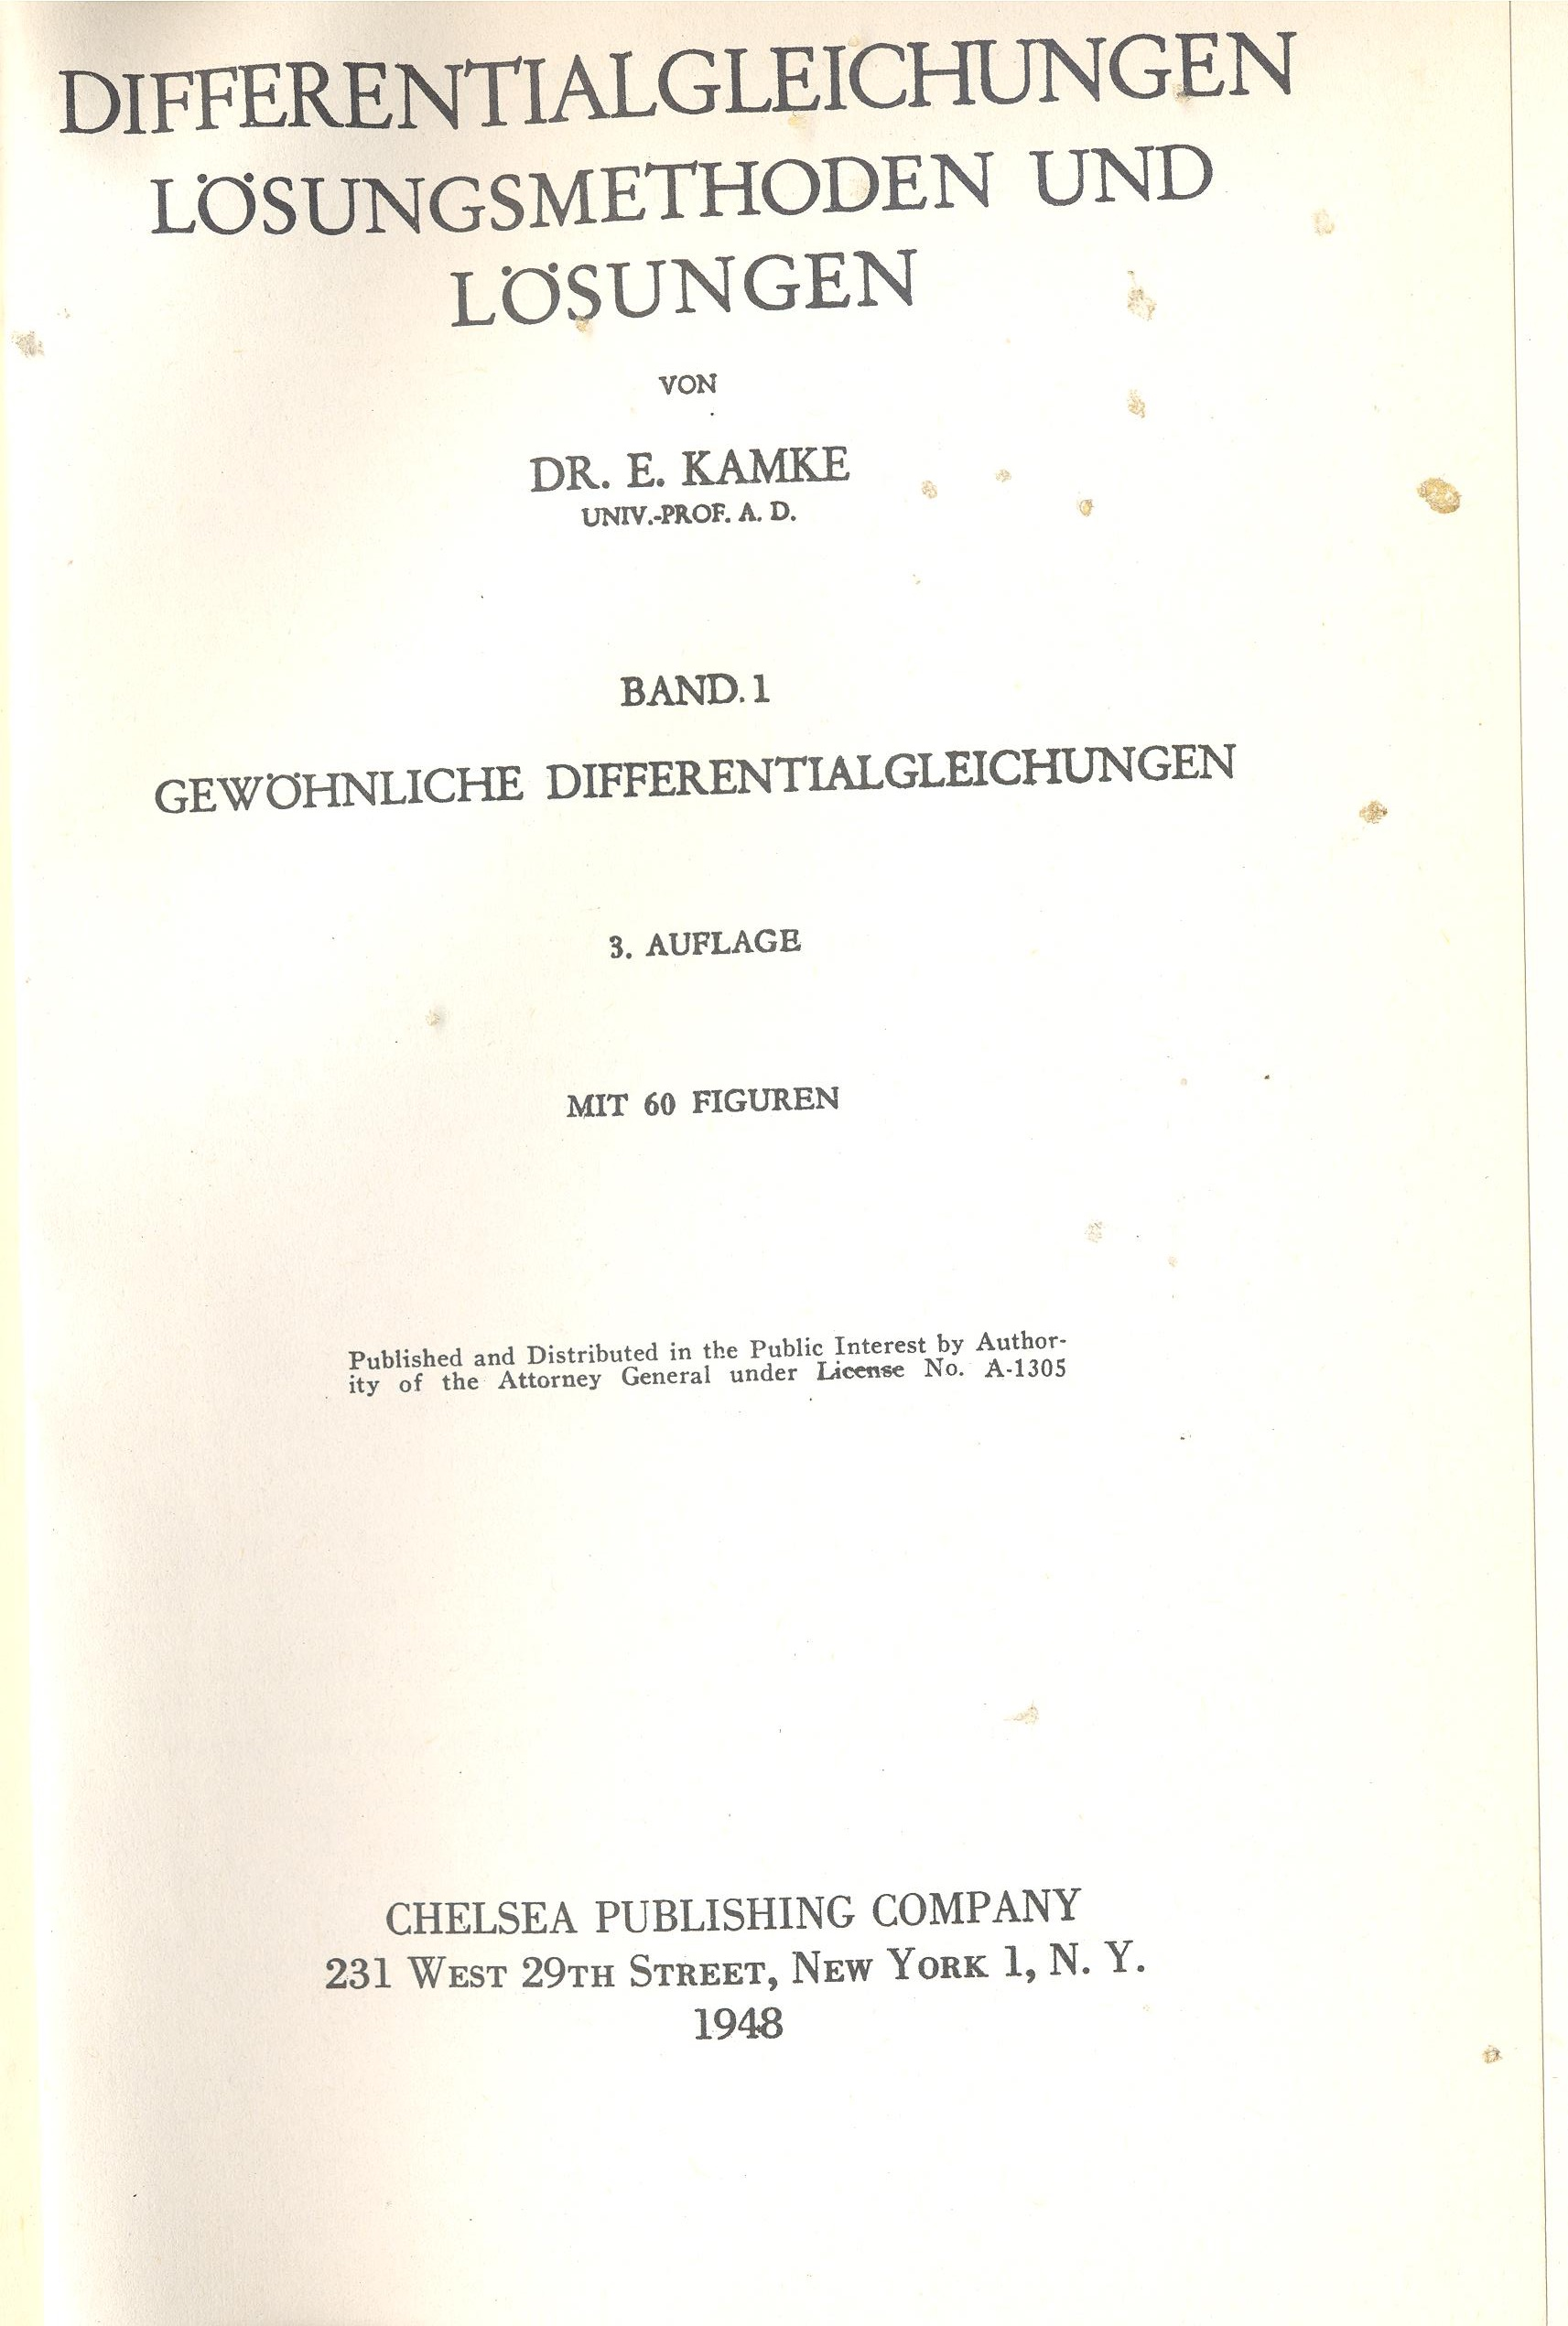 Kamke differential equations solved in maple and mathematica